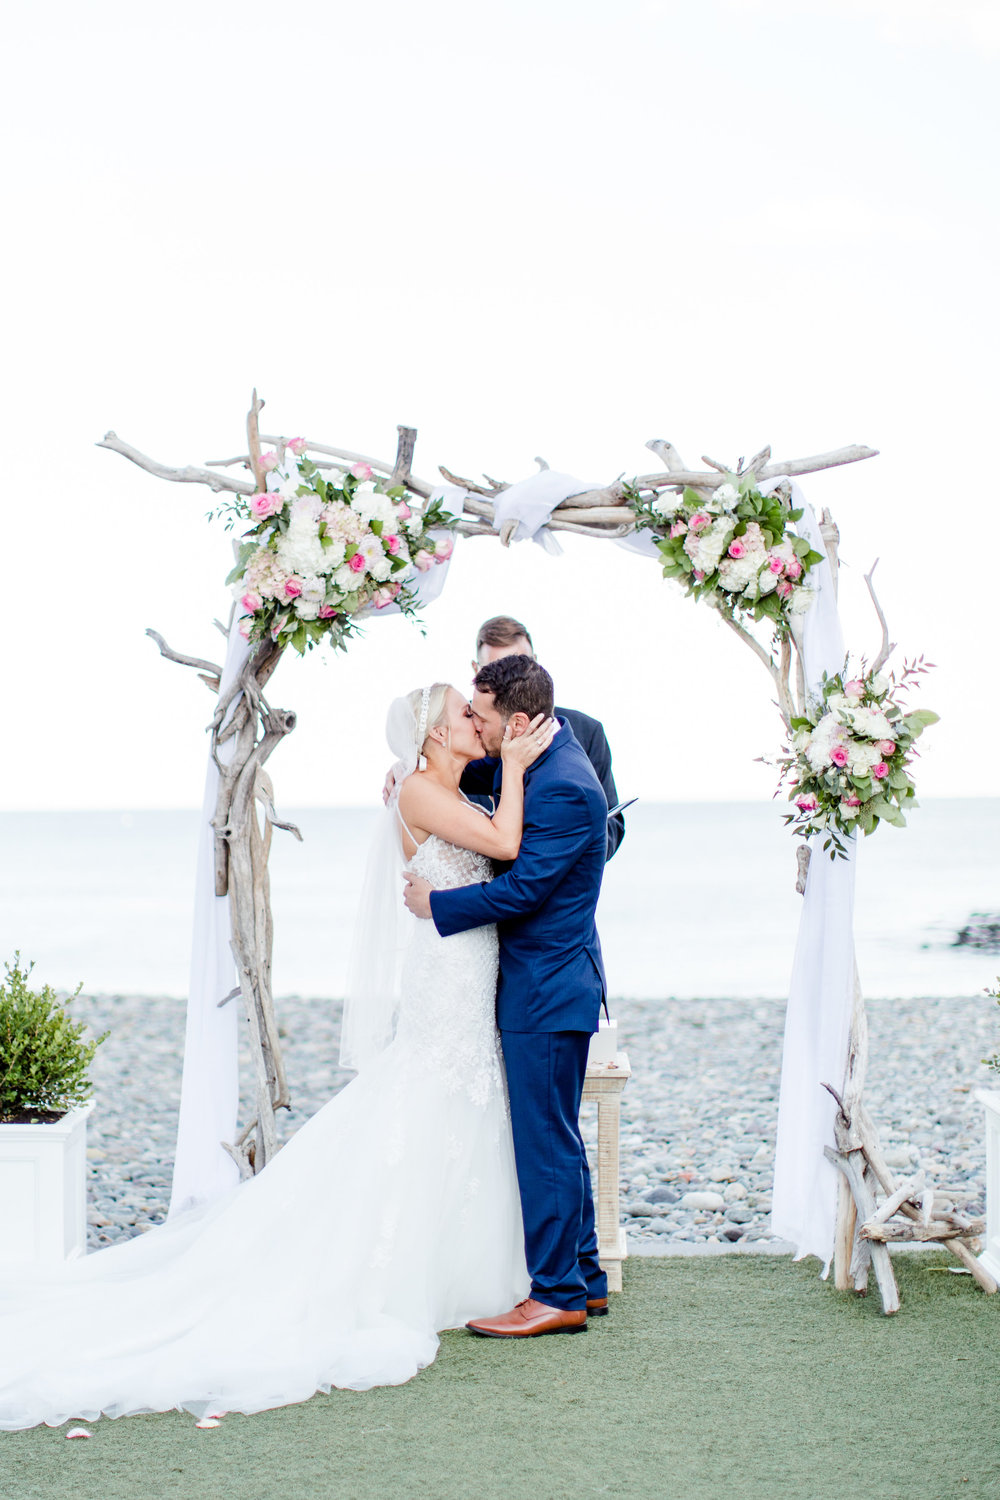 """Stephanie + Brian moments after saying """"I do"""" at their Oceanview of Nahant wedding (Nahant, MA)"""